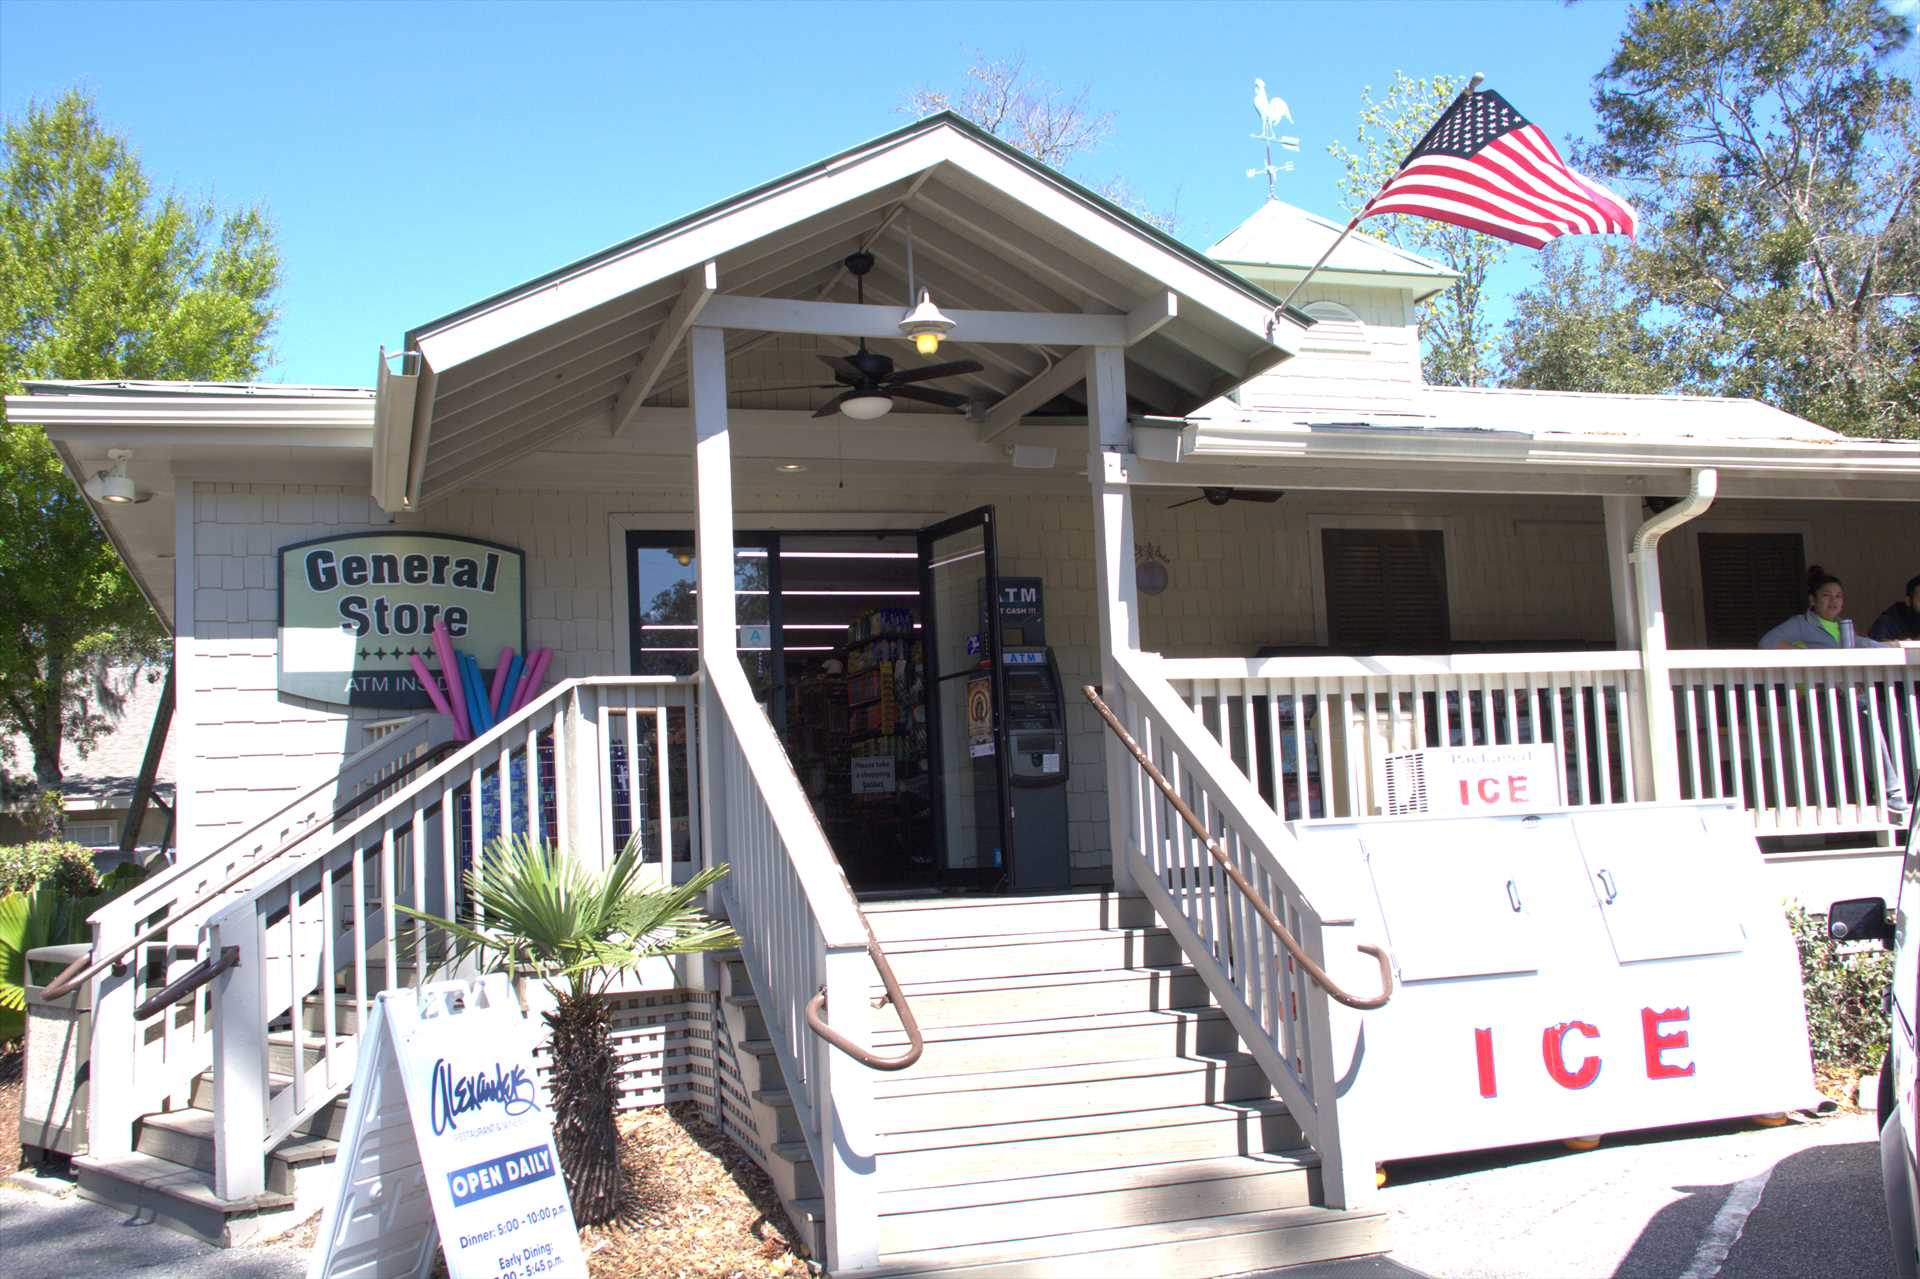 the General Store located in Palmetto dunes